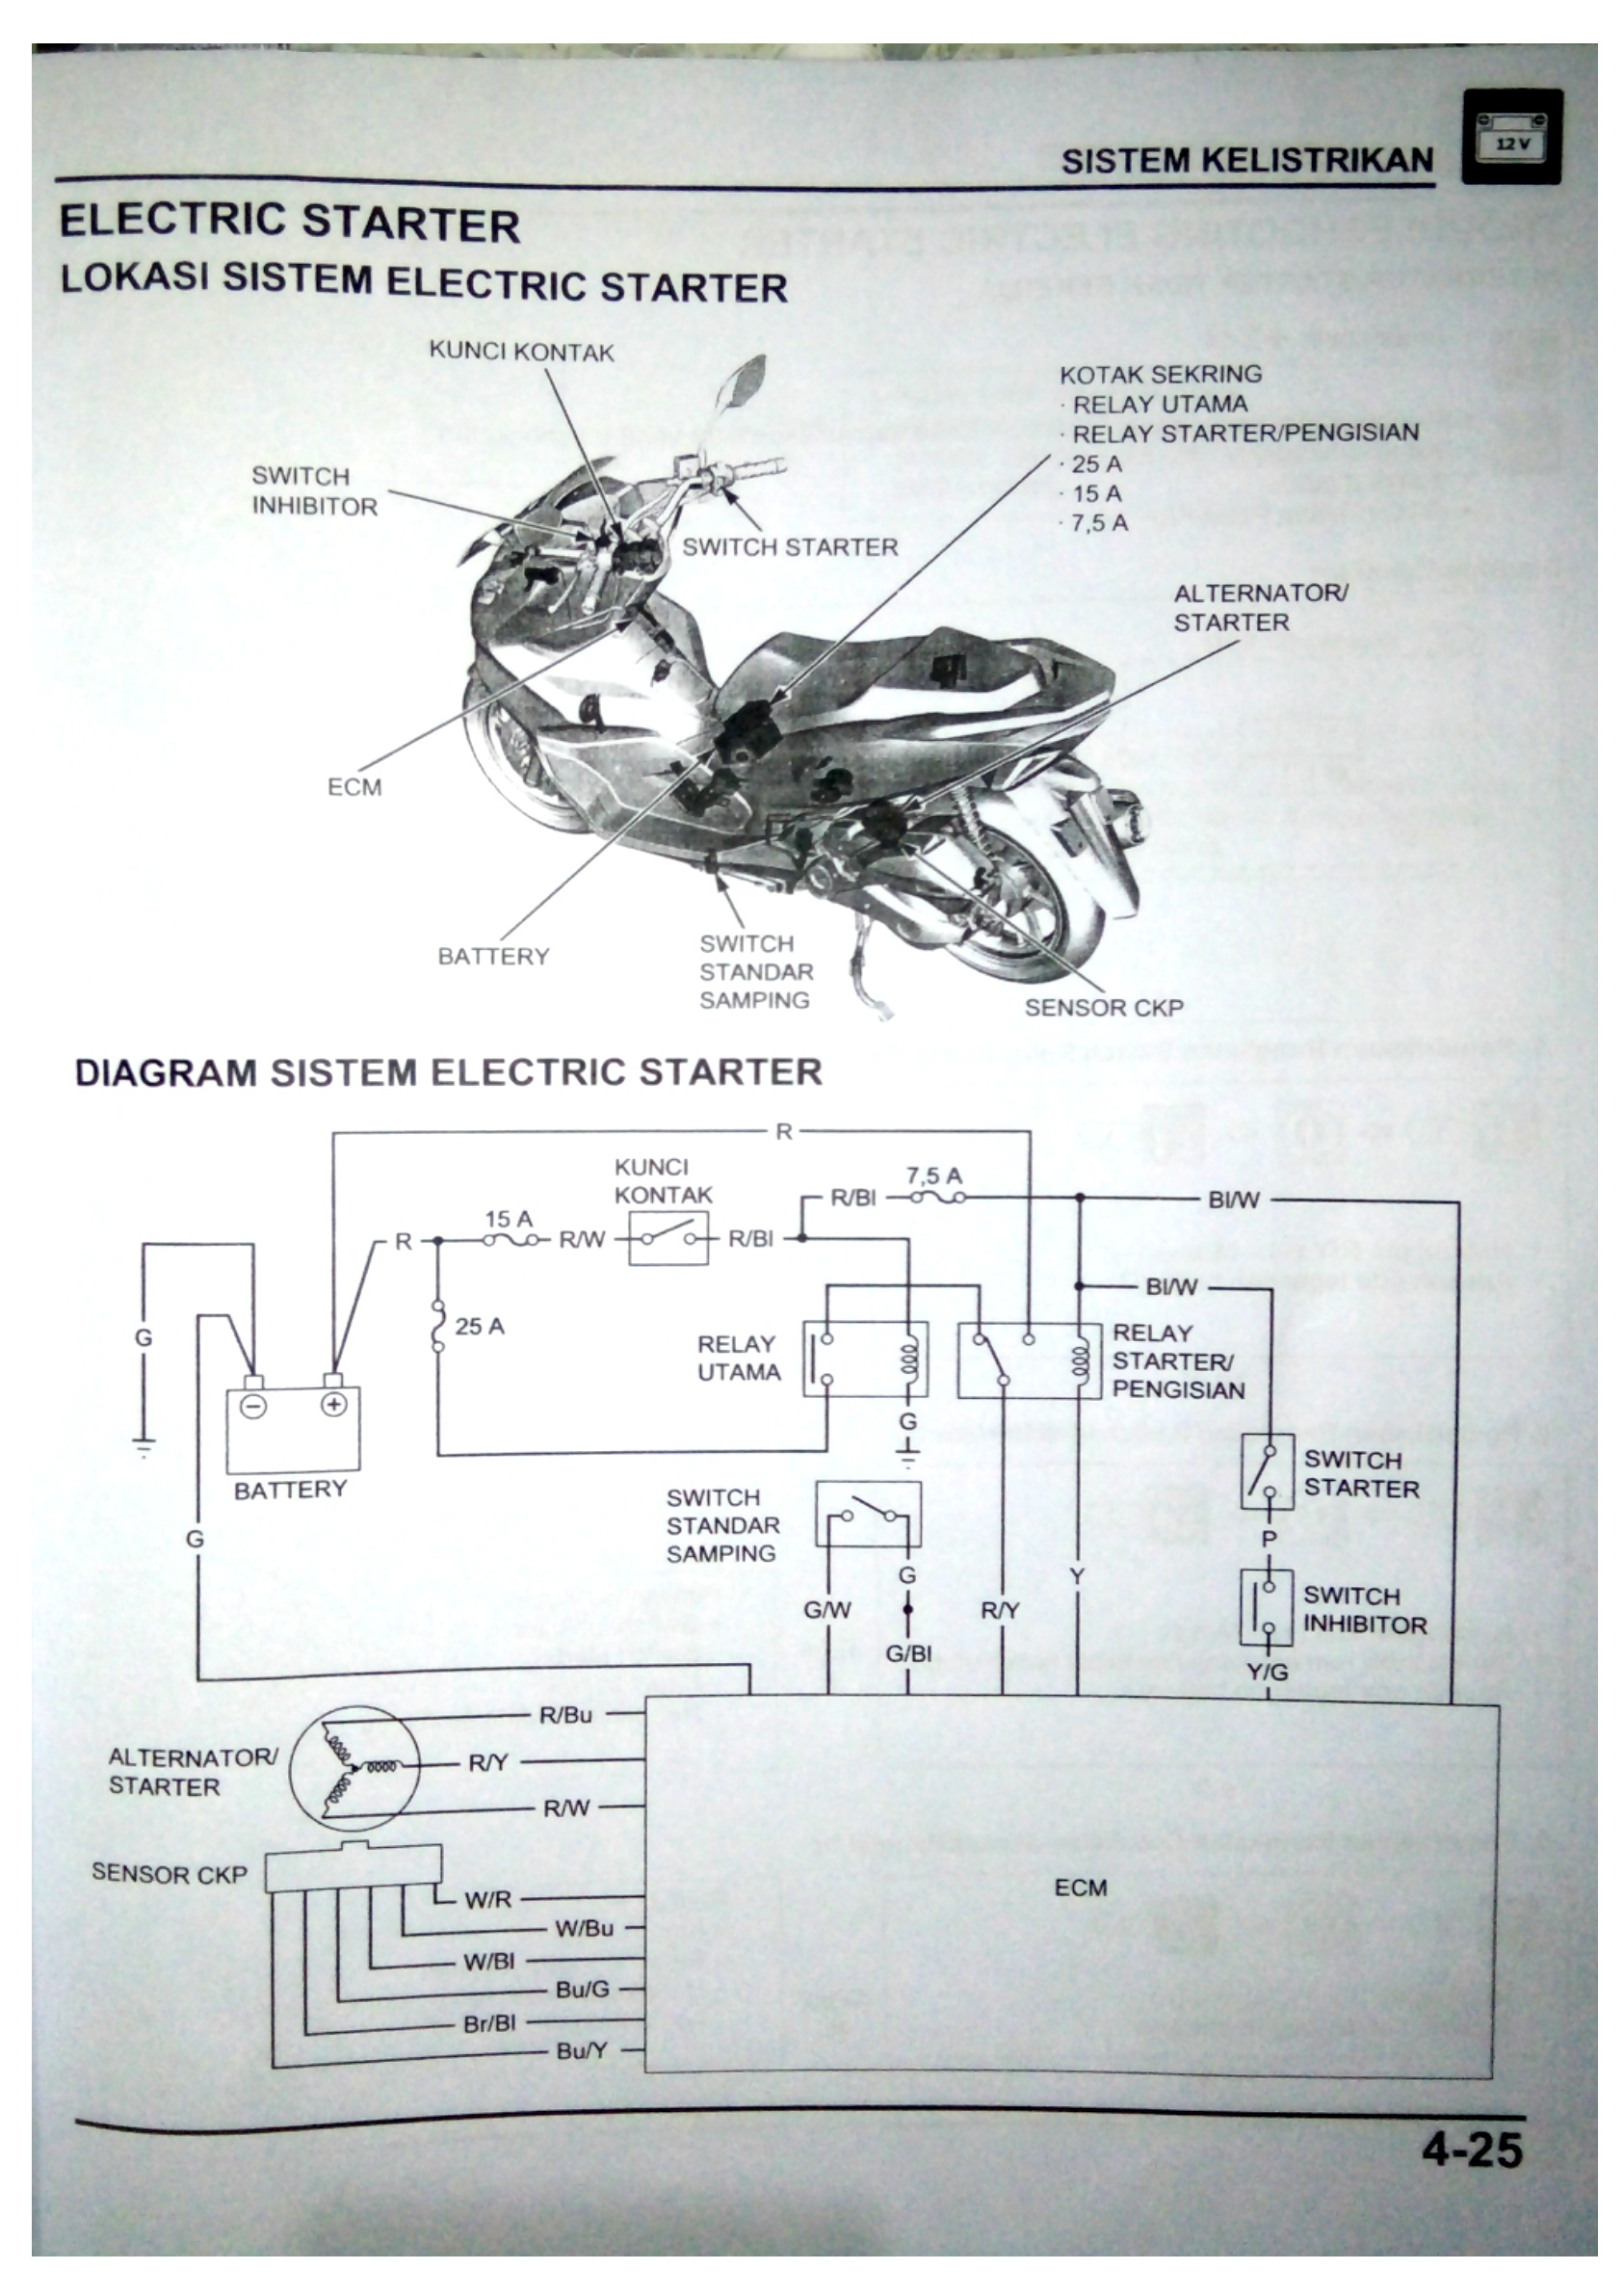 hight resolution of electric wiring system diagram honda new pcx 150 2018 gisix s blog wiring diagram honda pcx wiring diagram honda pcx